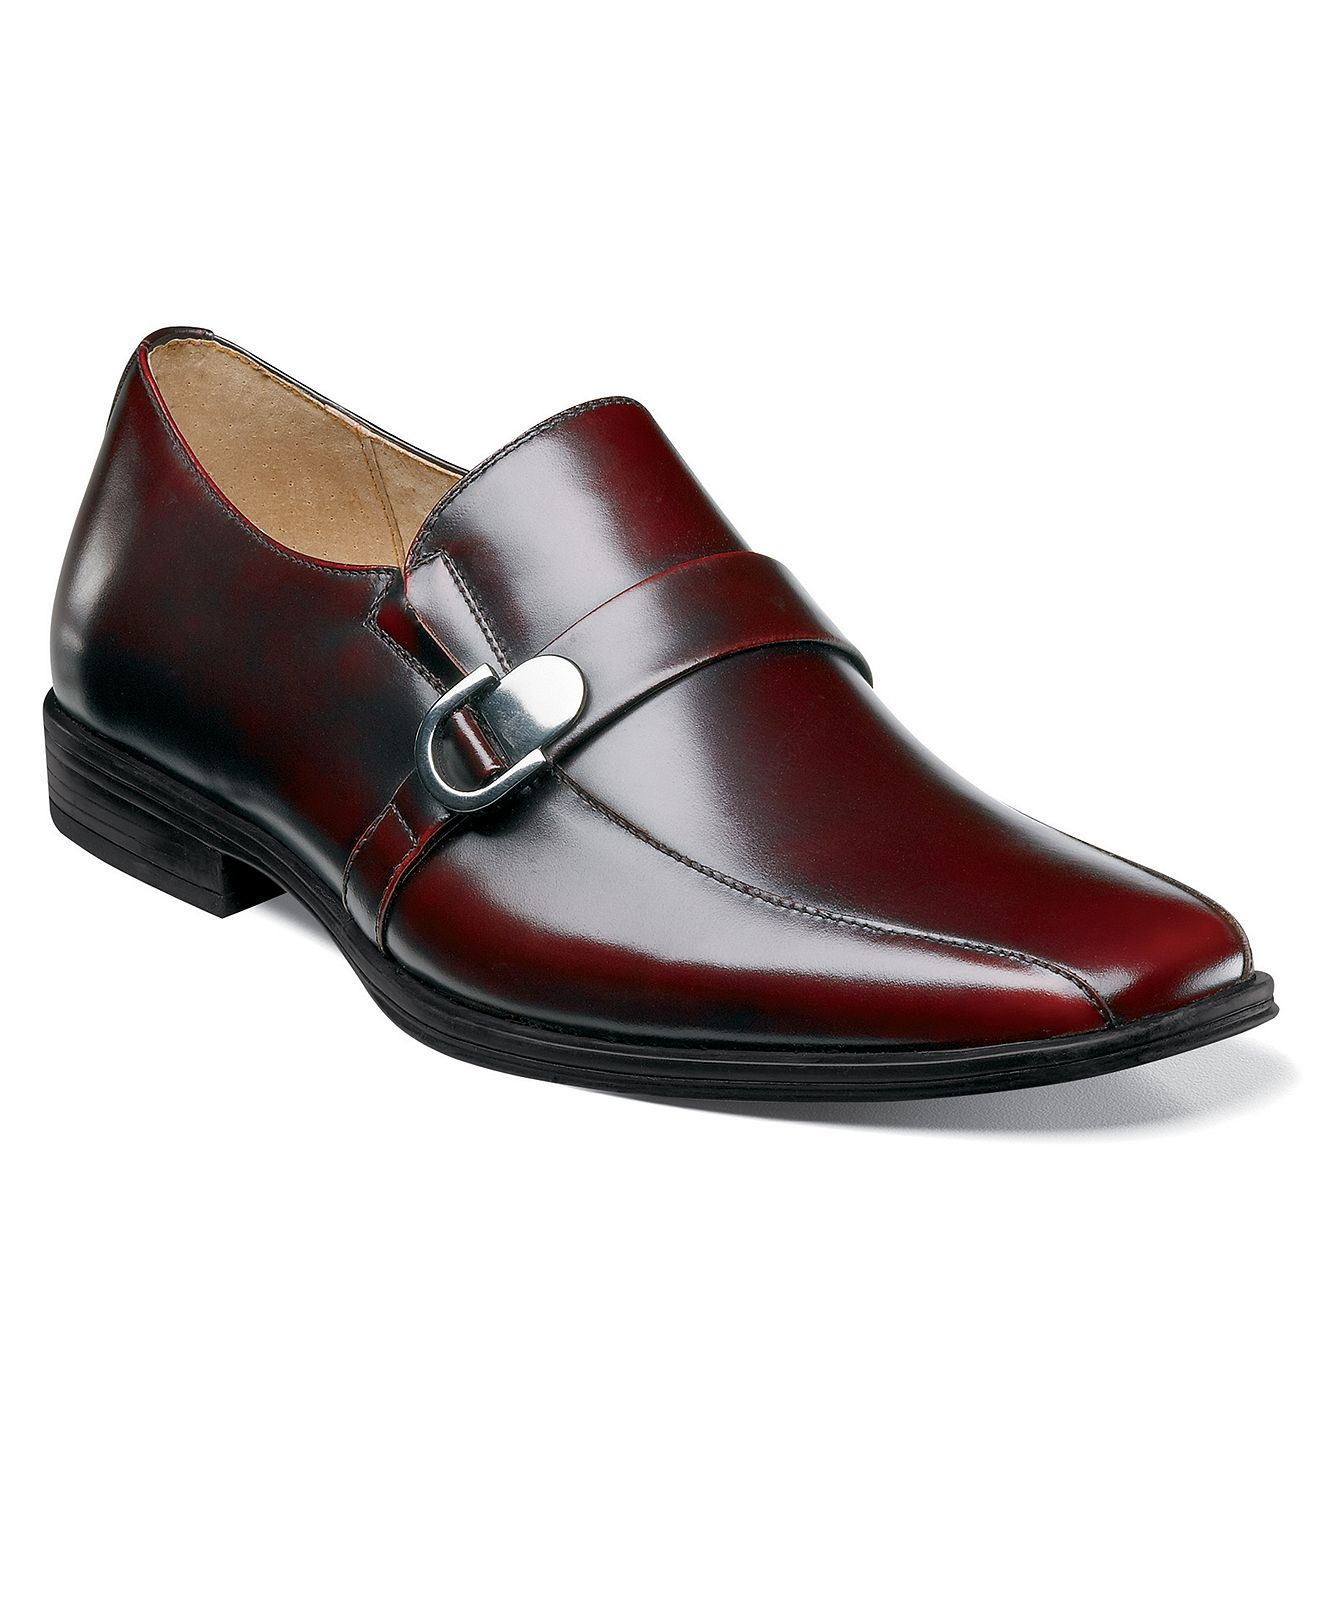 50deee9579c The angels wanna wear his red shoes... Stacy Adams Burgundy Slip Ons from  Macy s.